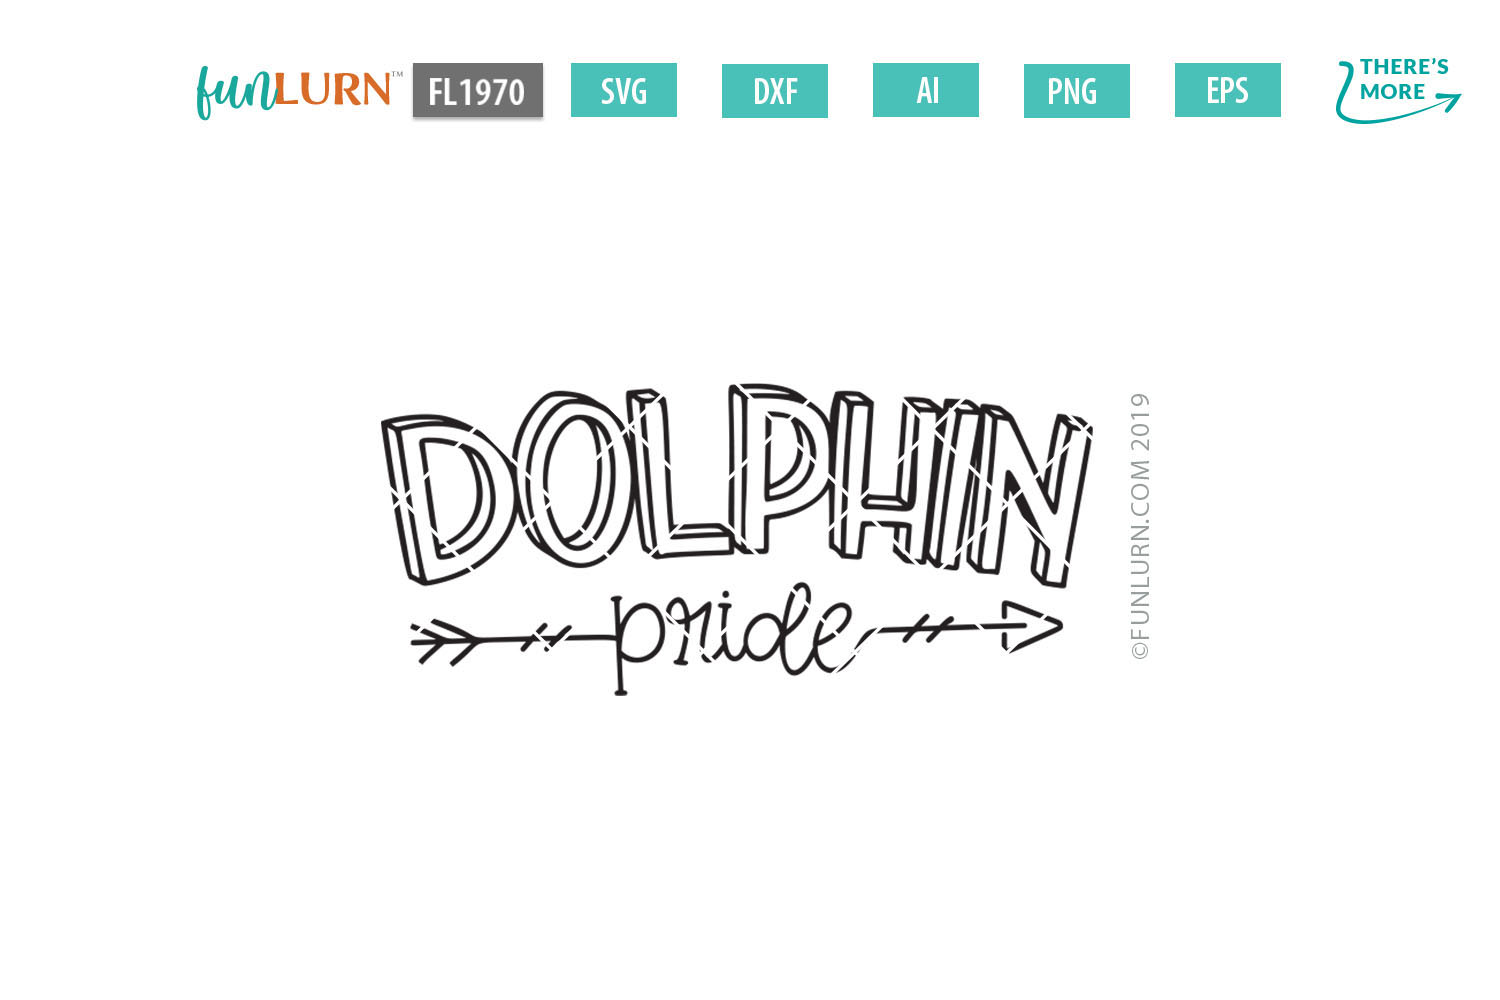 Dolphin Pride Team SVG Cut File example image 2